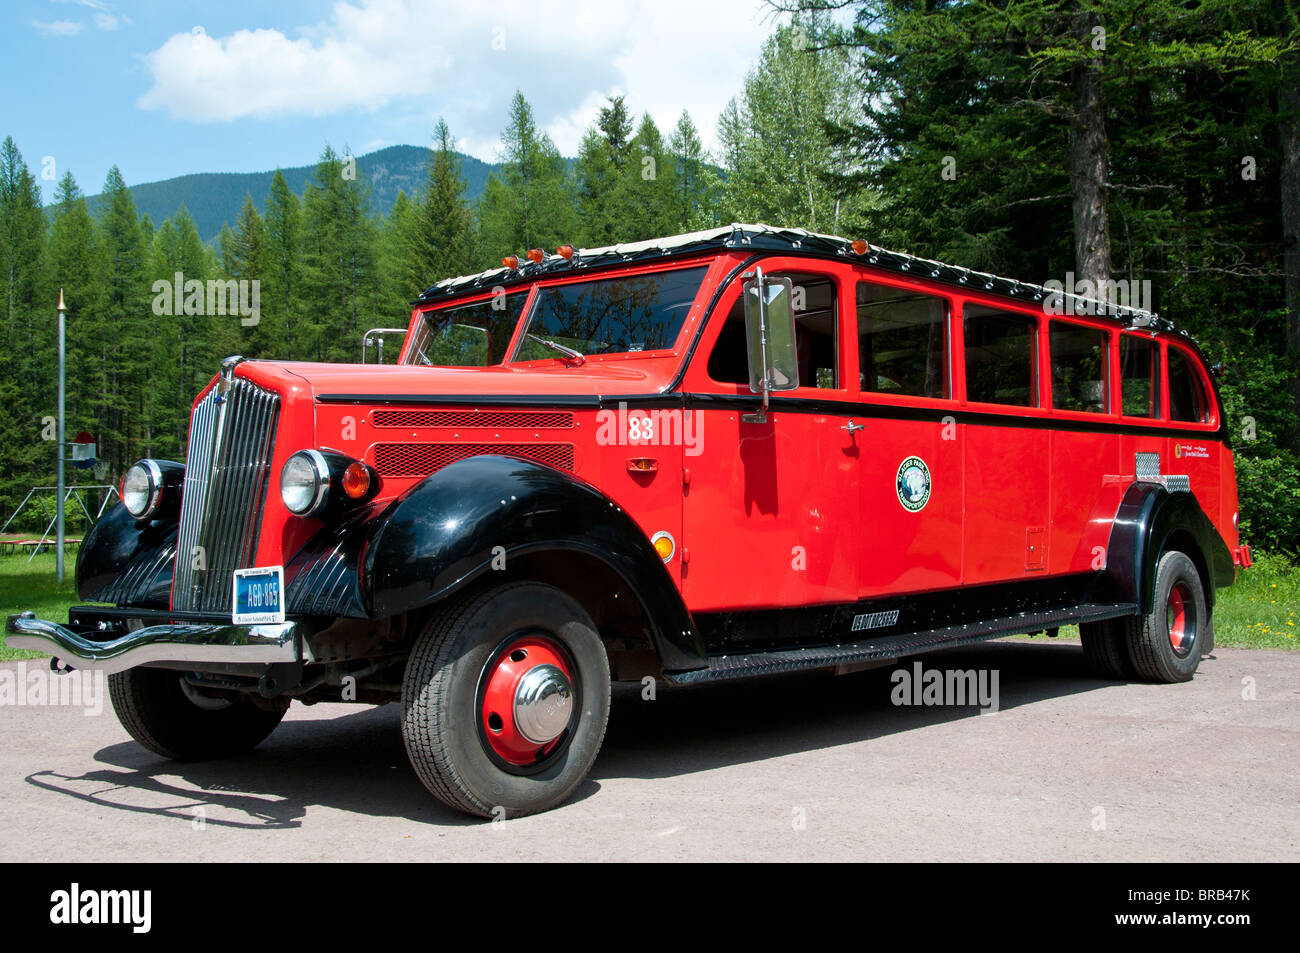 Red bus outside Izaak Walton Inn, Essex, Montana. - Stock Image